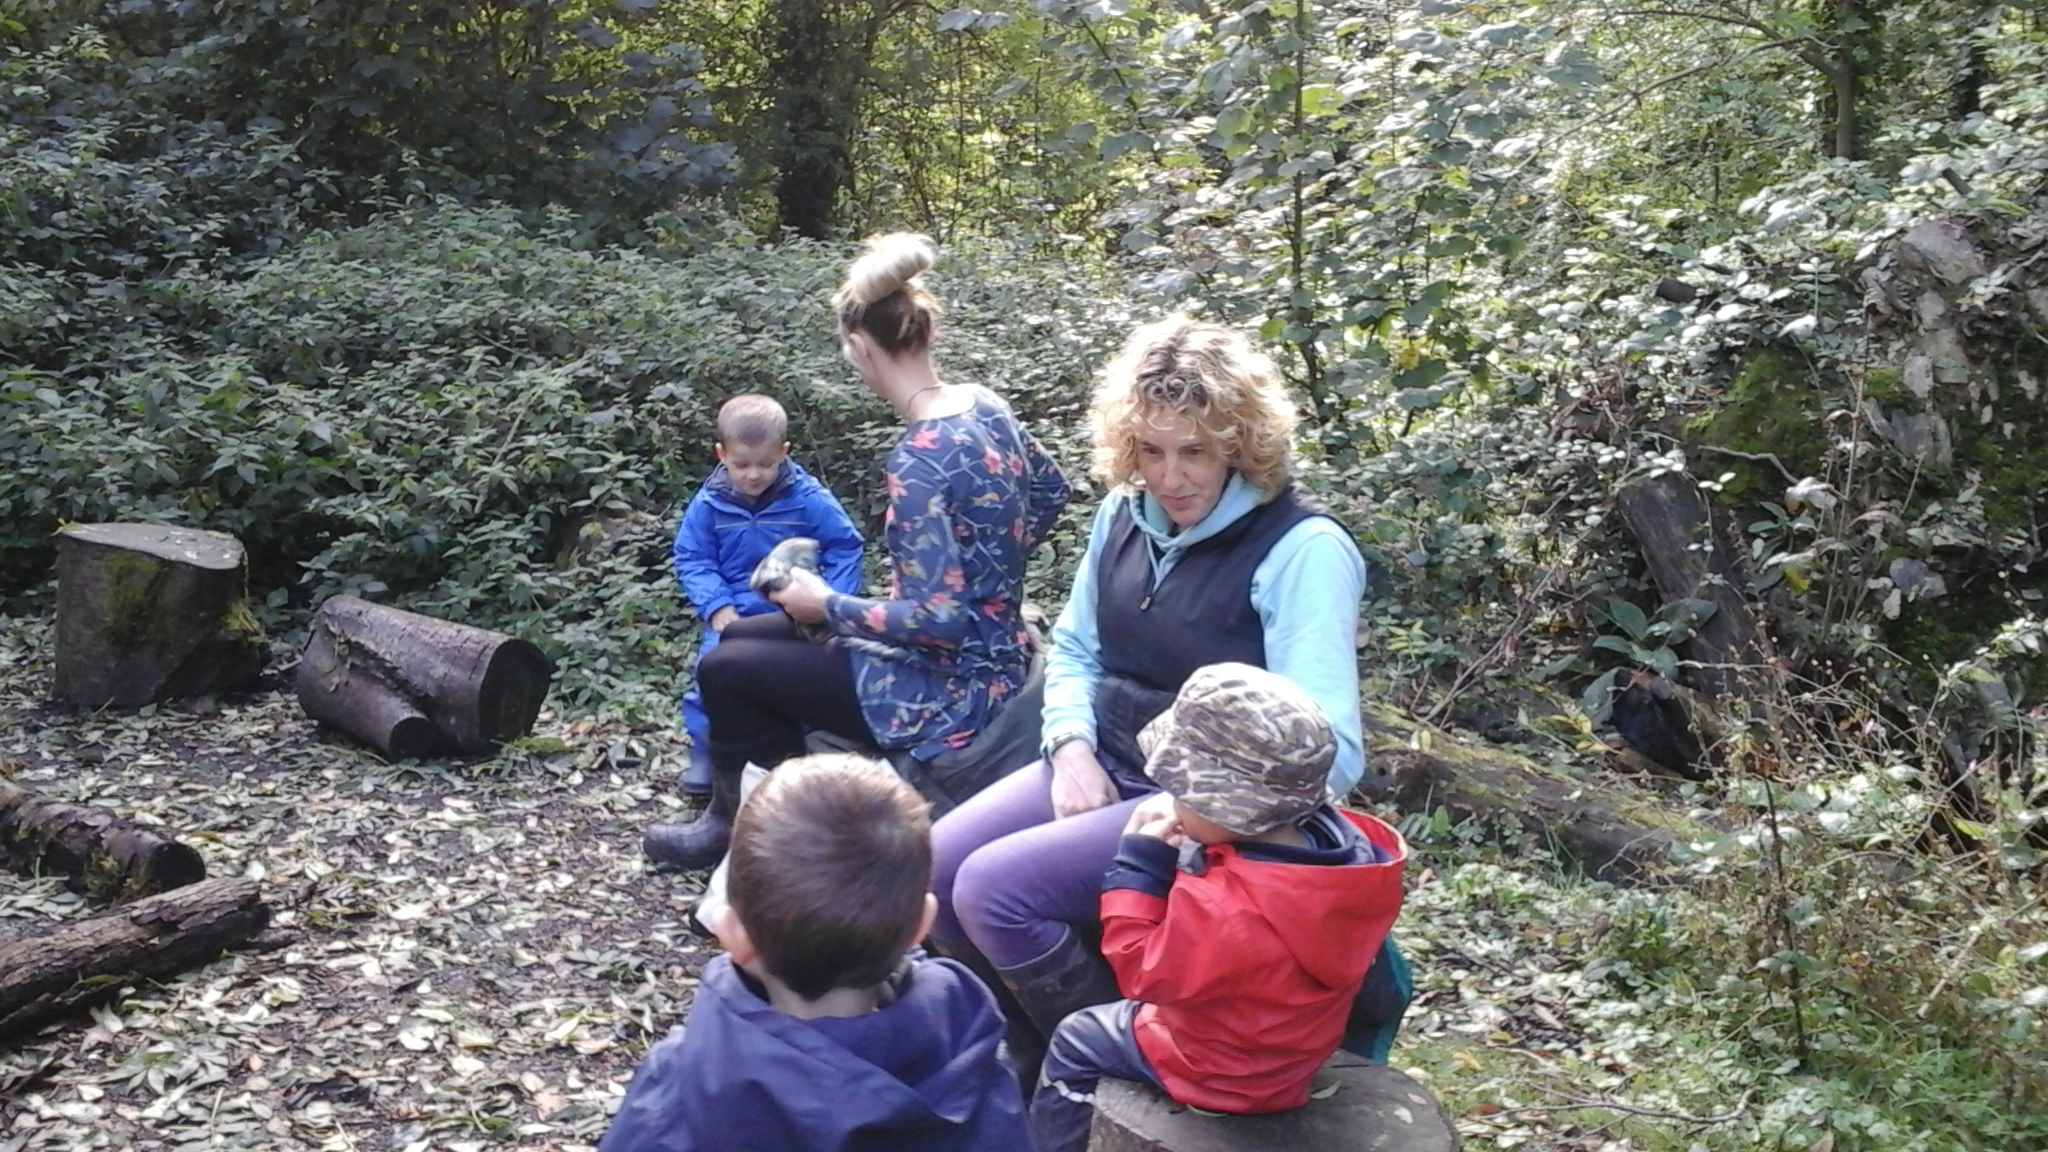 Flying Start Duchy Host Forest School Stay Play for Parents